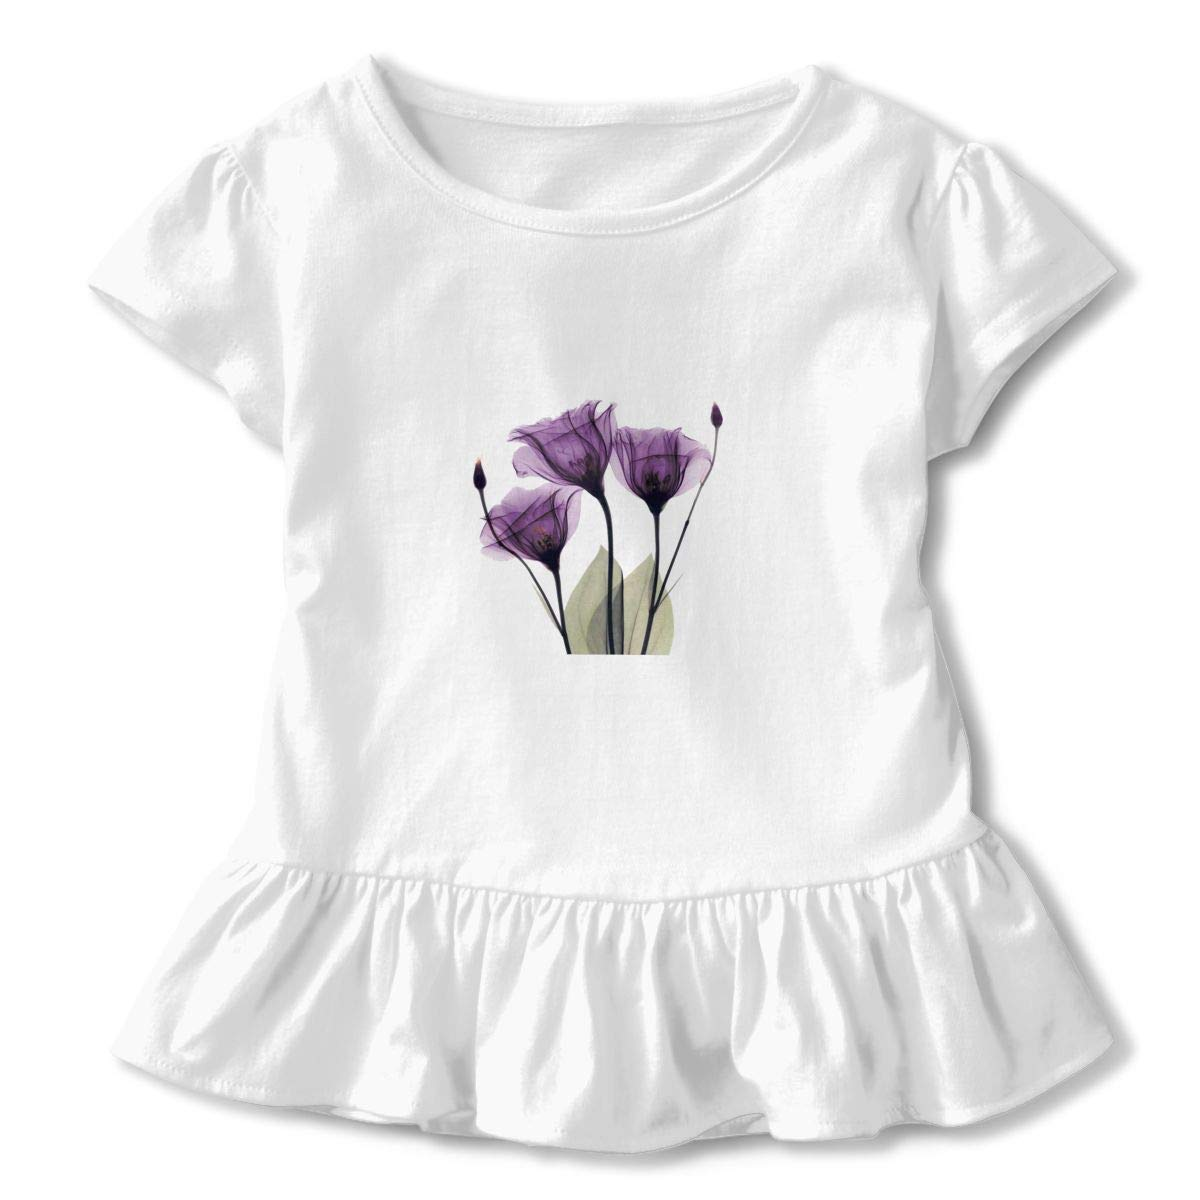 Elegant Tulip Purple Flower Cute Toddler Kids Girls Short Sleeves Shirts with Ruffles and O-Neck Printed Patterns in Front for Daily Wear Theme Party School